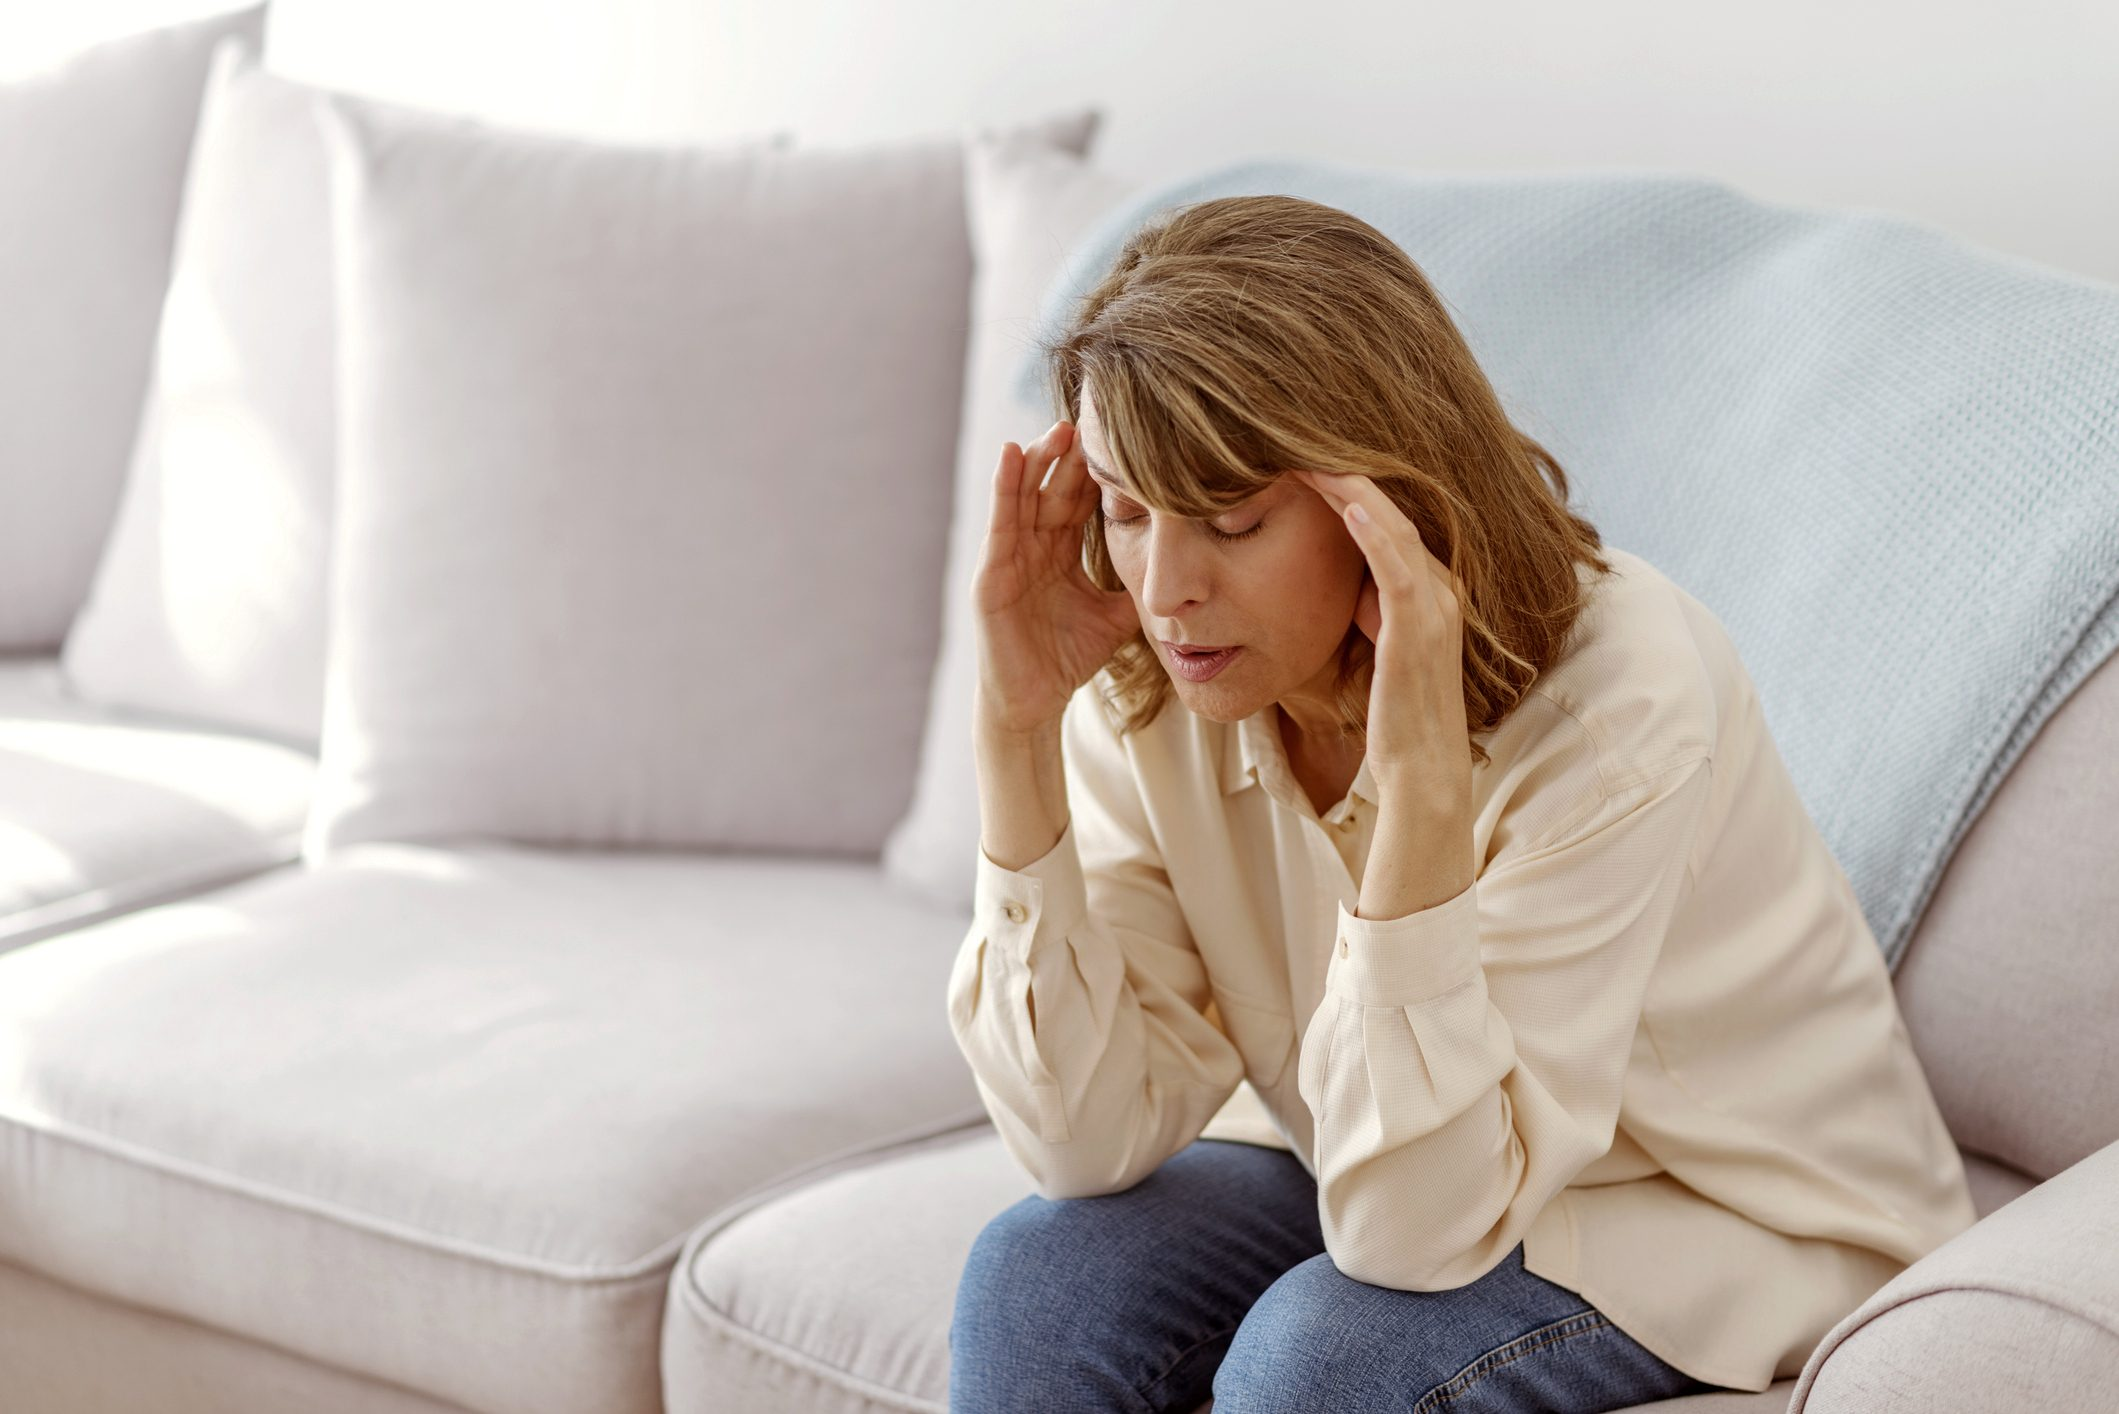 woman sitting on couch with headache pain